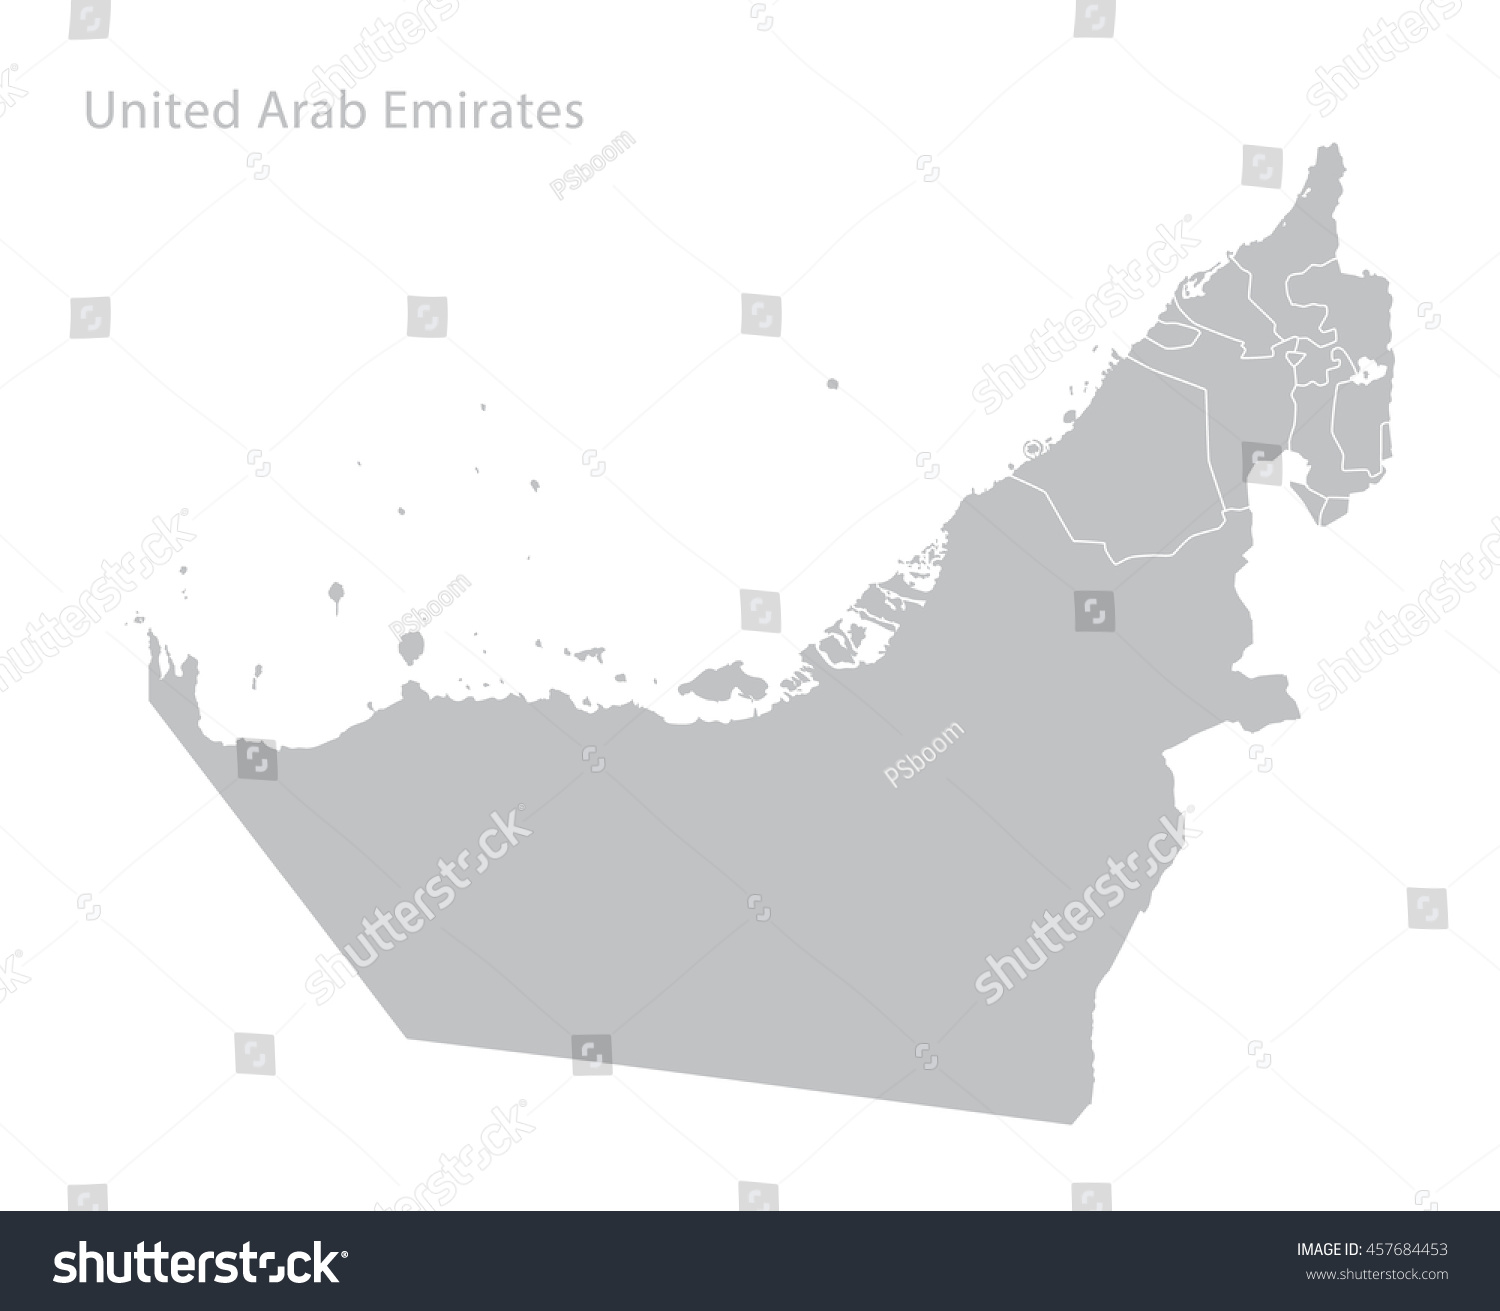 Map United Arab Emirates Stock Vector (Royalty Free) 457684453 ...